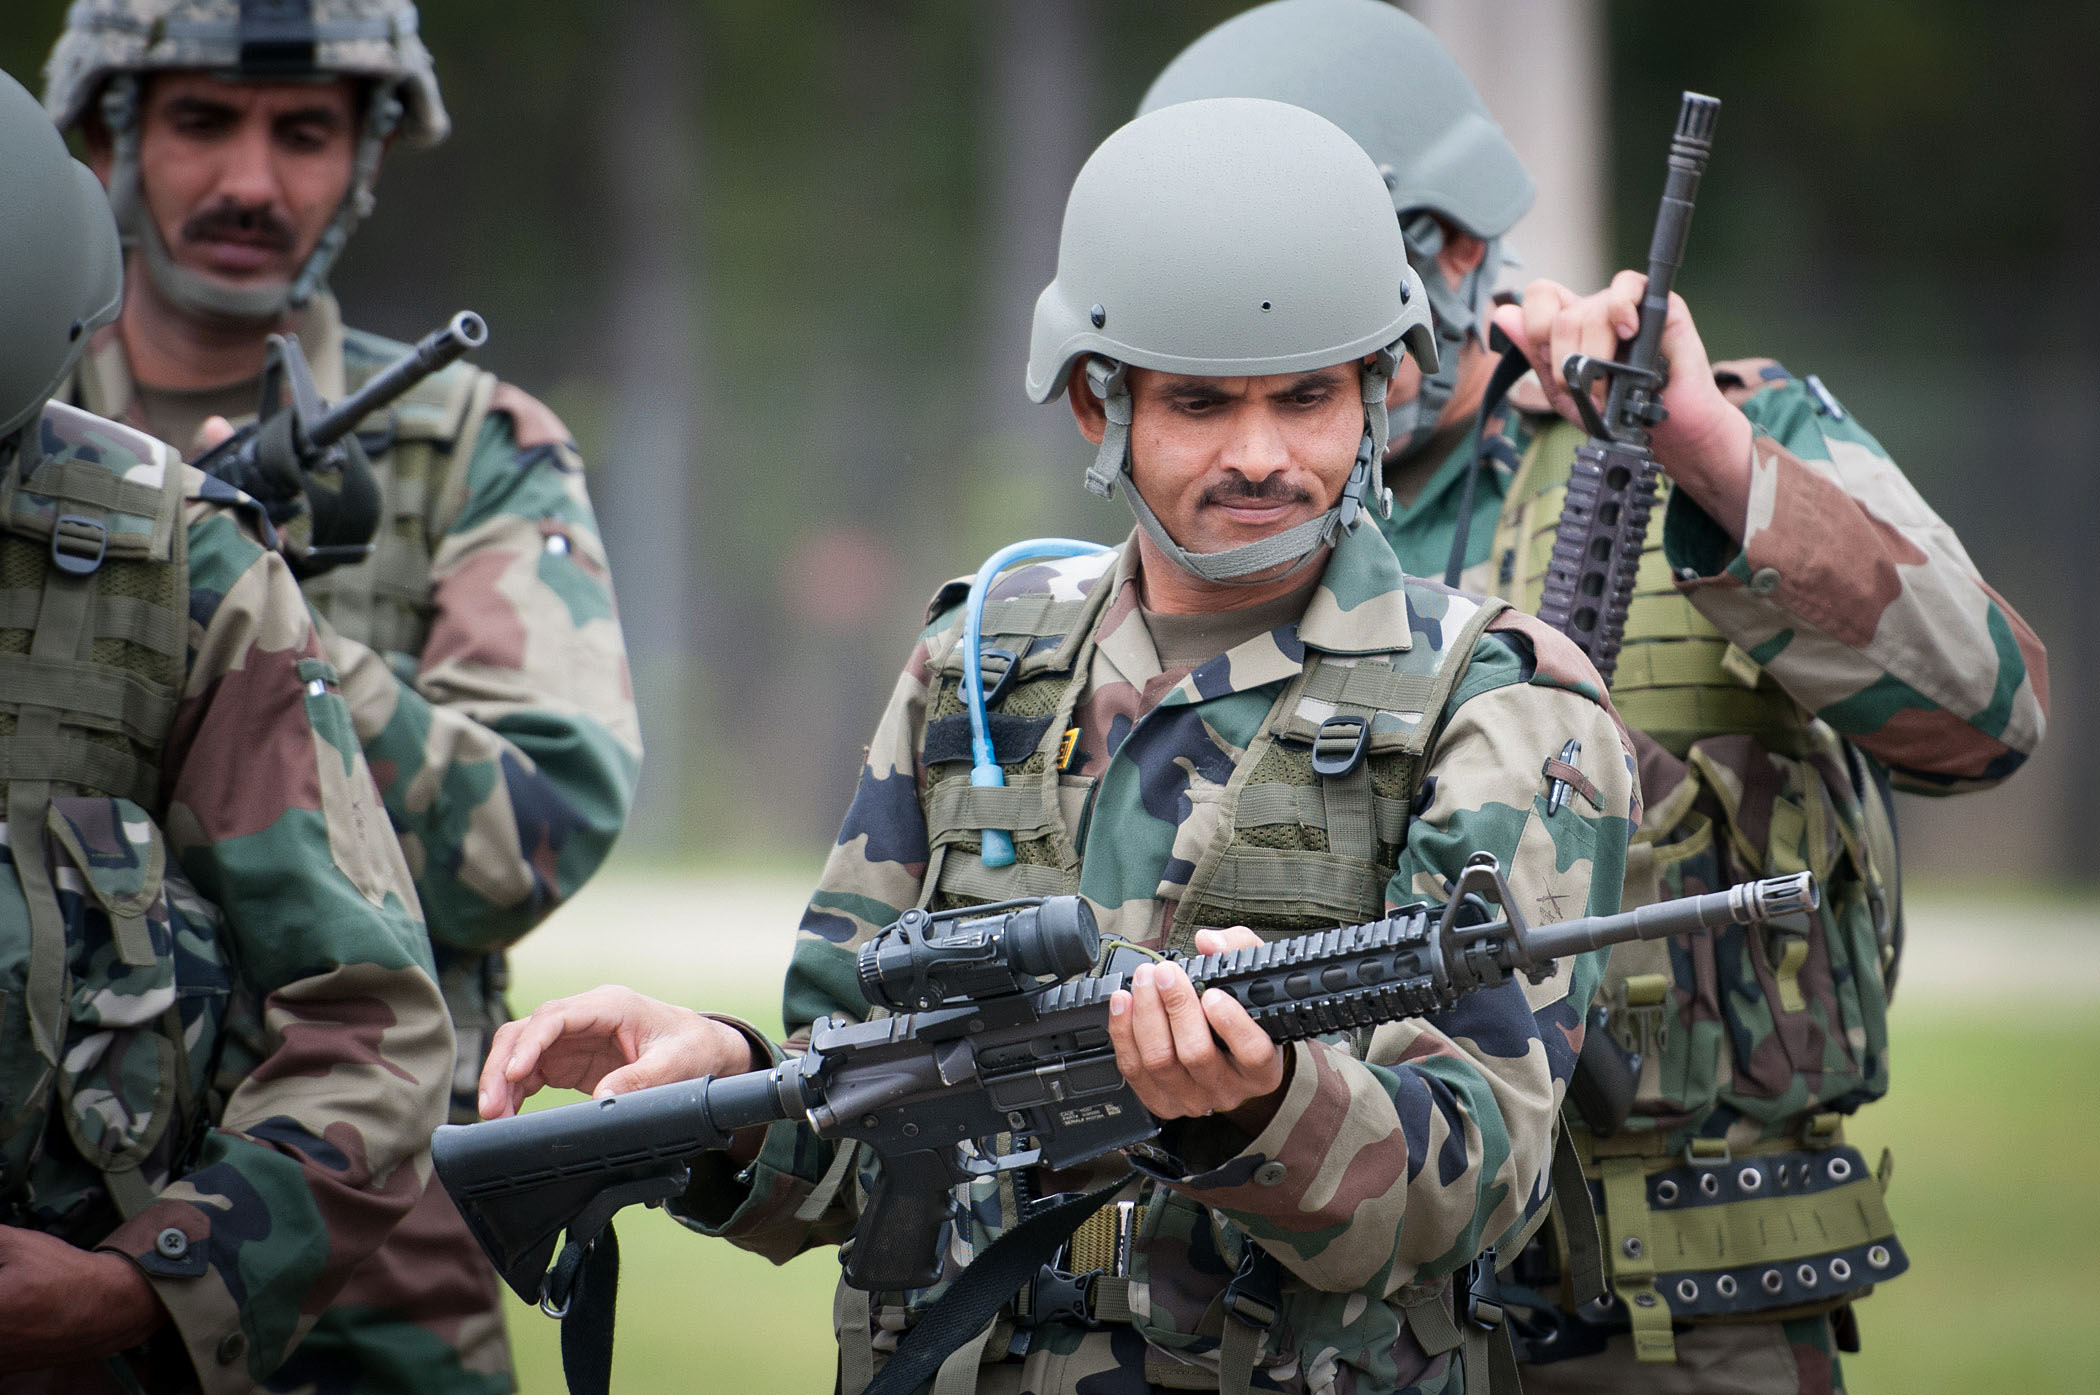 An_Indian_Army_paratrooper_with_the_50th_Independent_Para_Brigade_examines_an_M4_carbine_prior_to_sighting_in_the_weapon_at_Fort_Bragg_N.C.